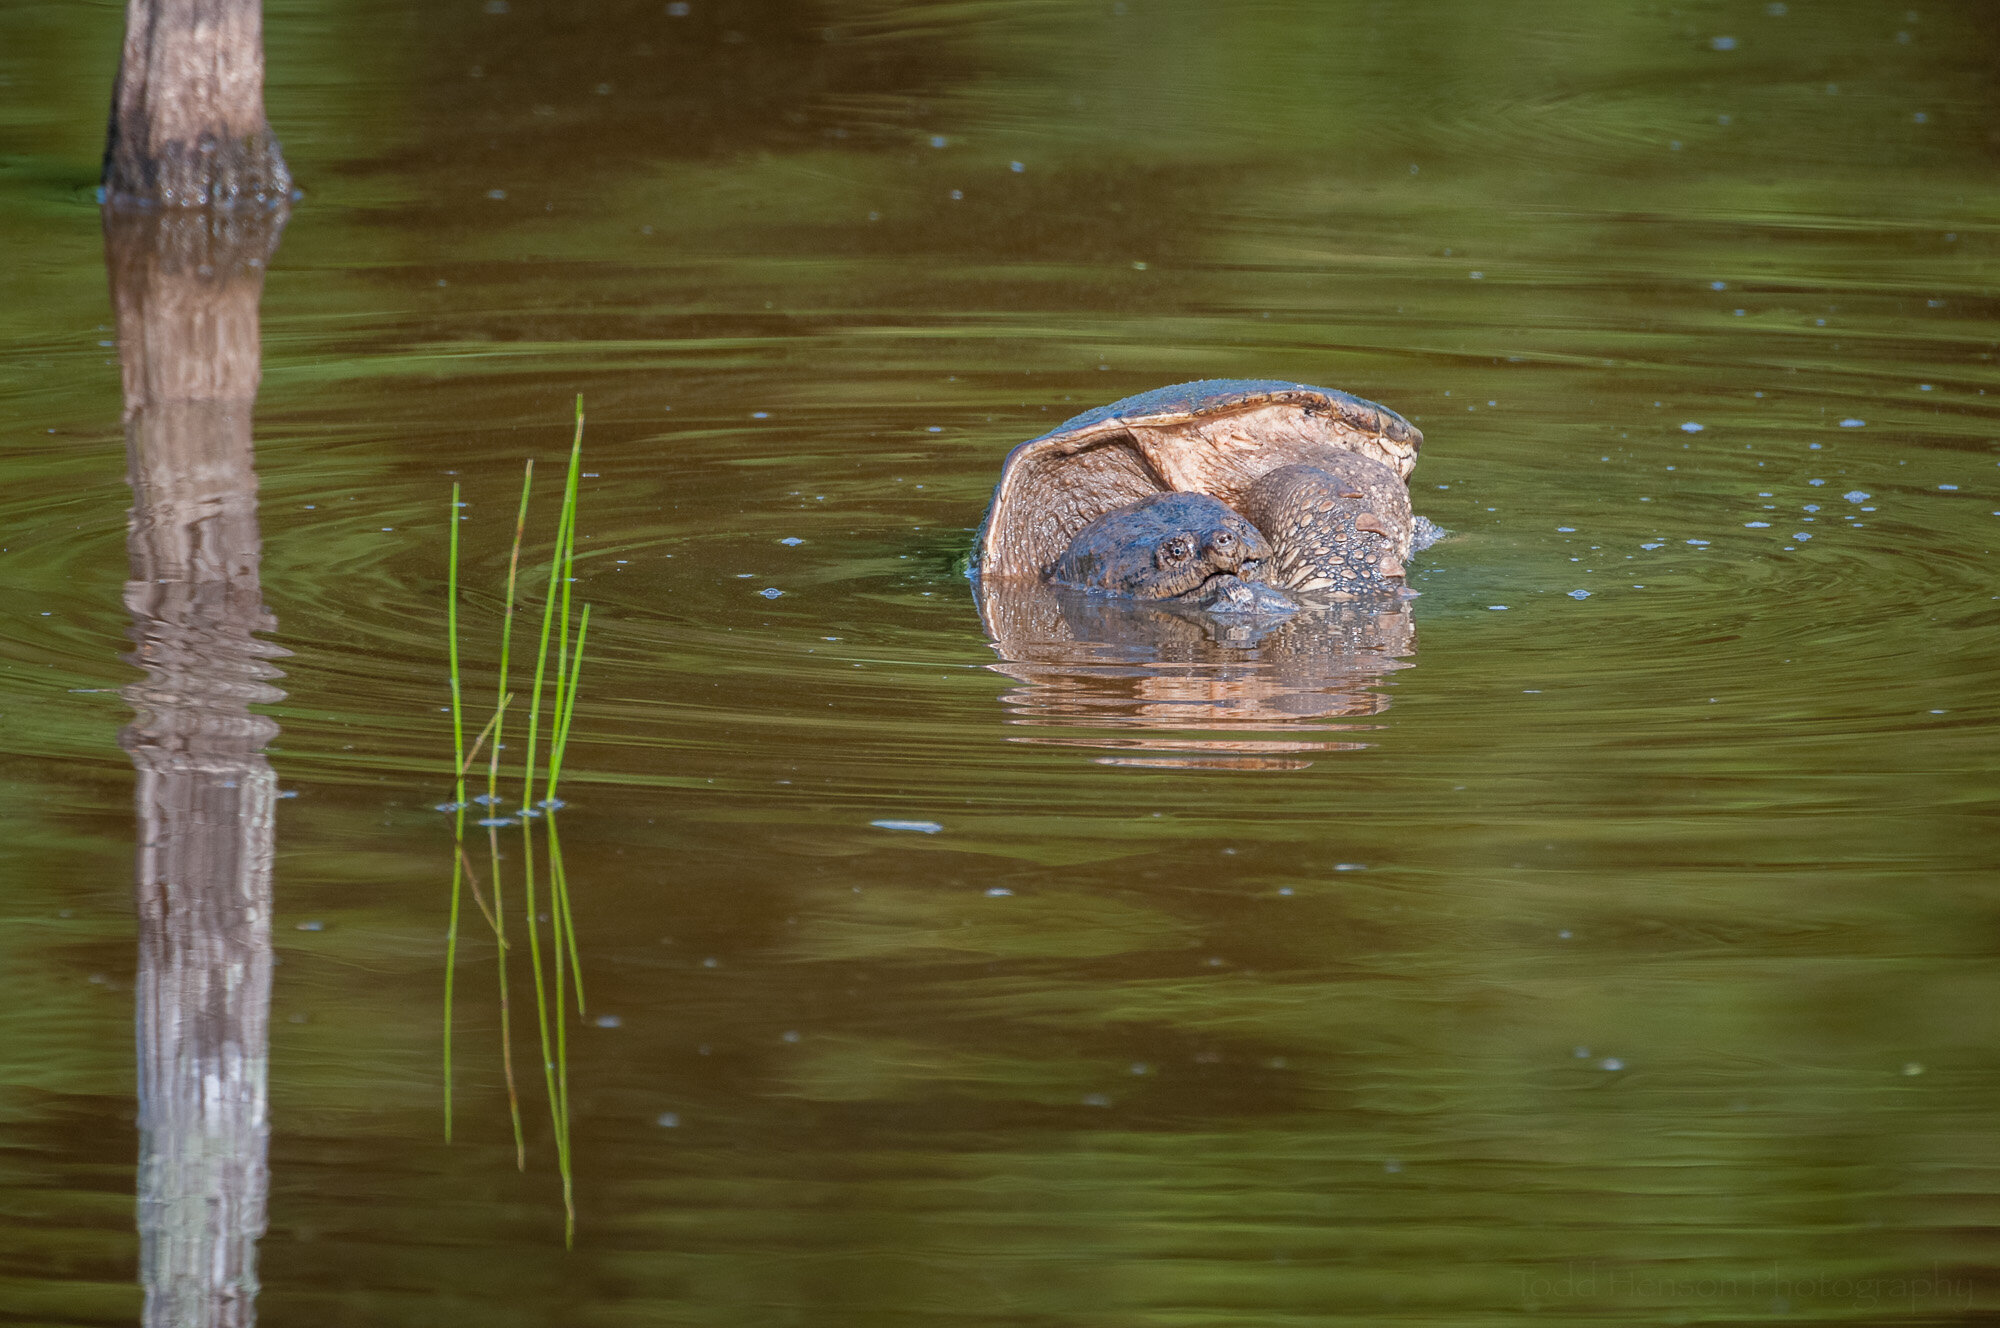 The male Snapping Turtle peeks its head above the water.